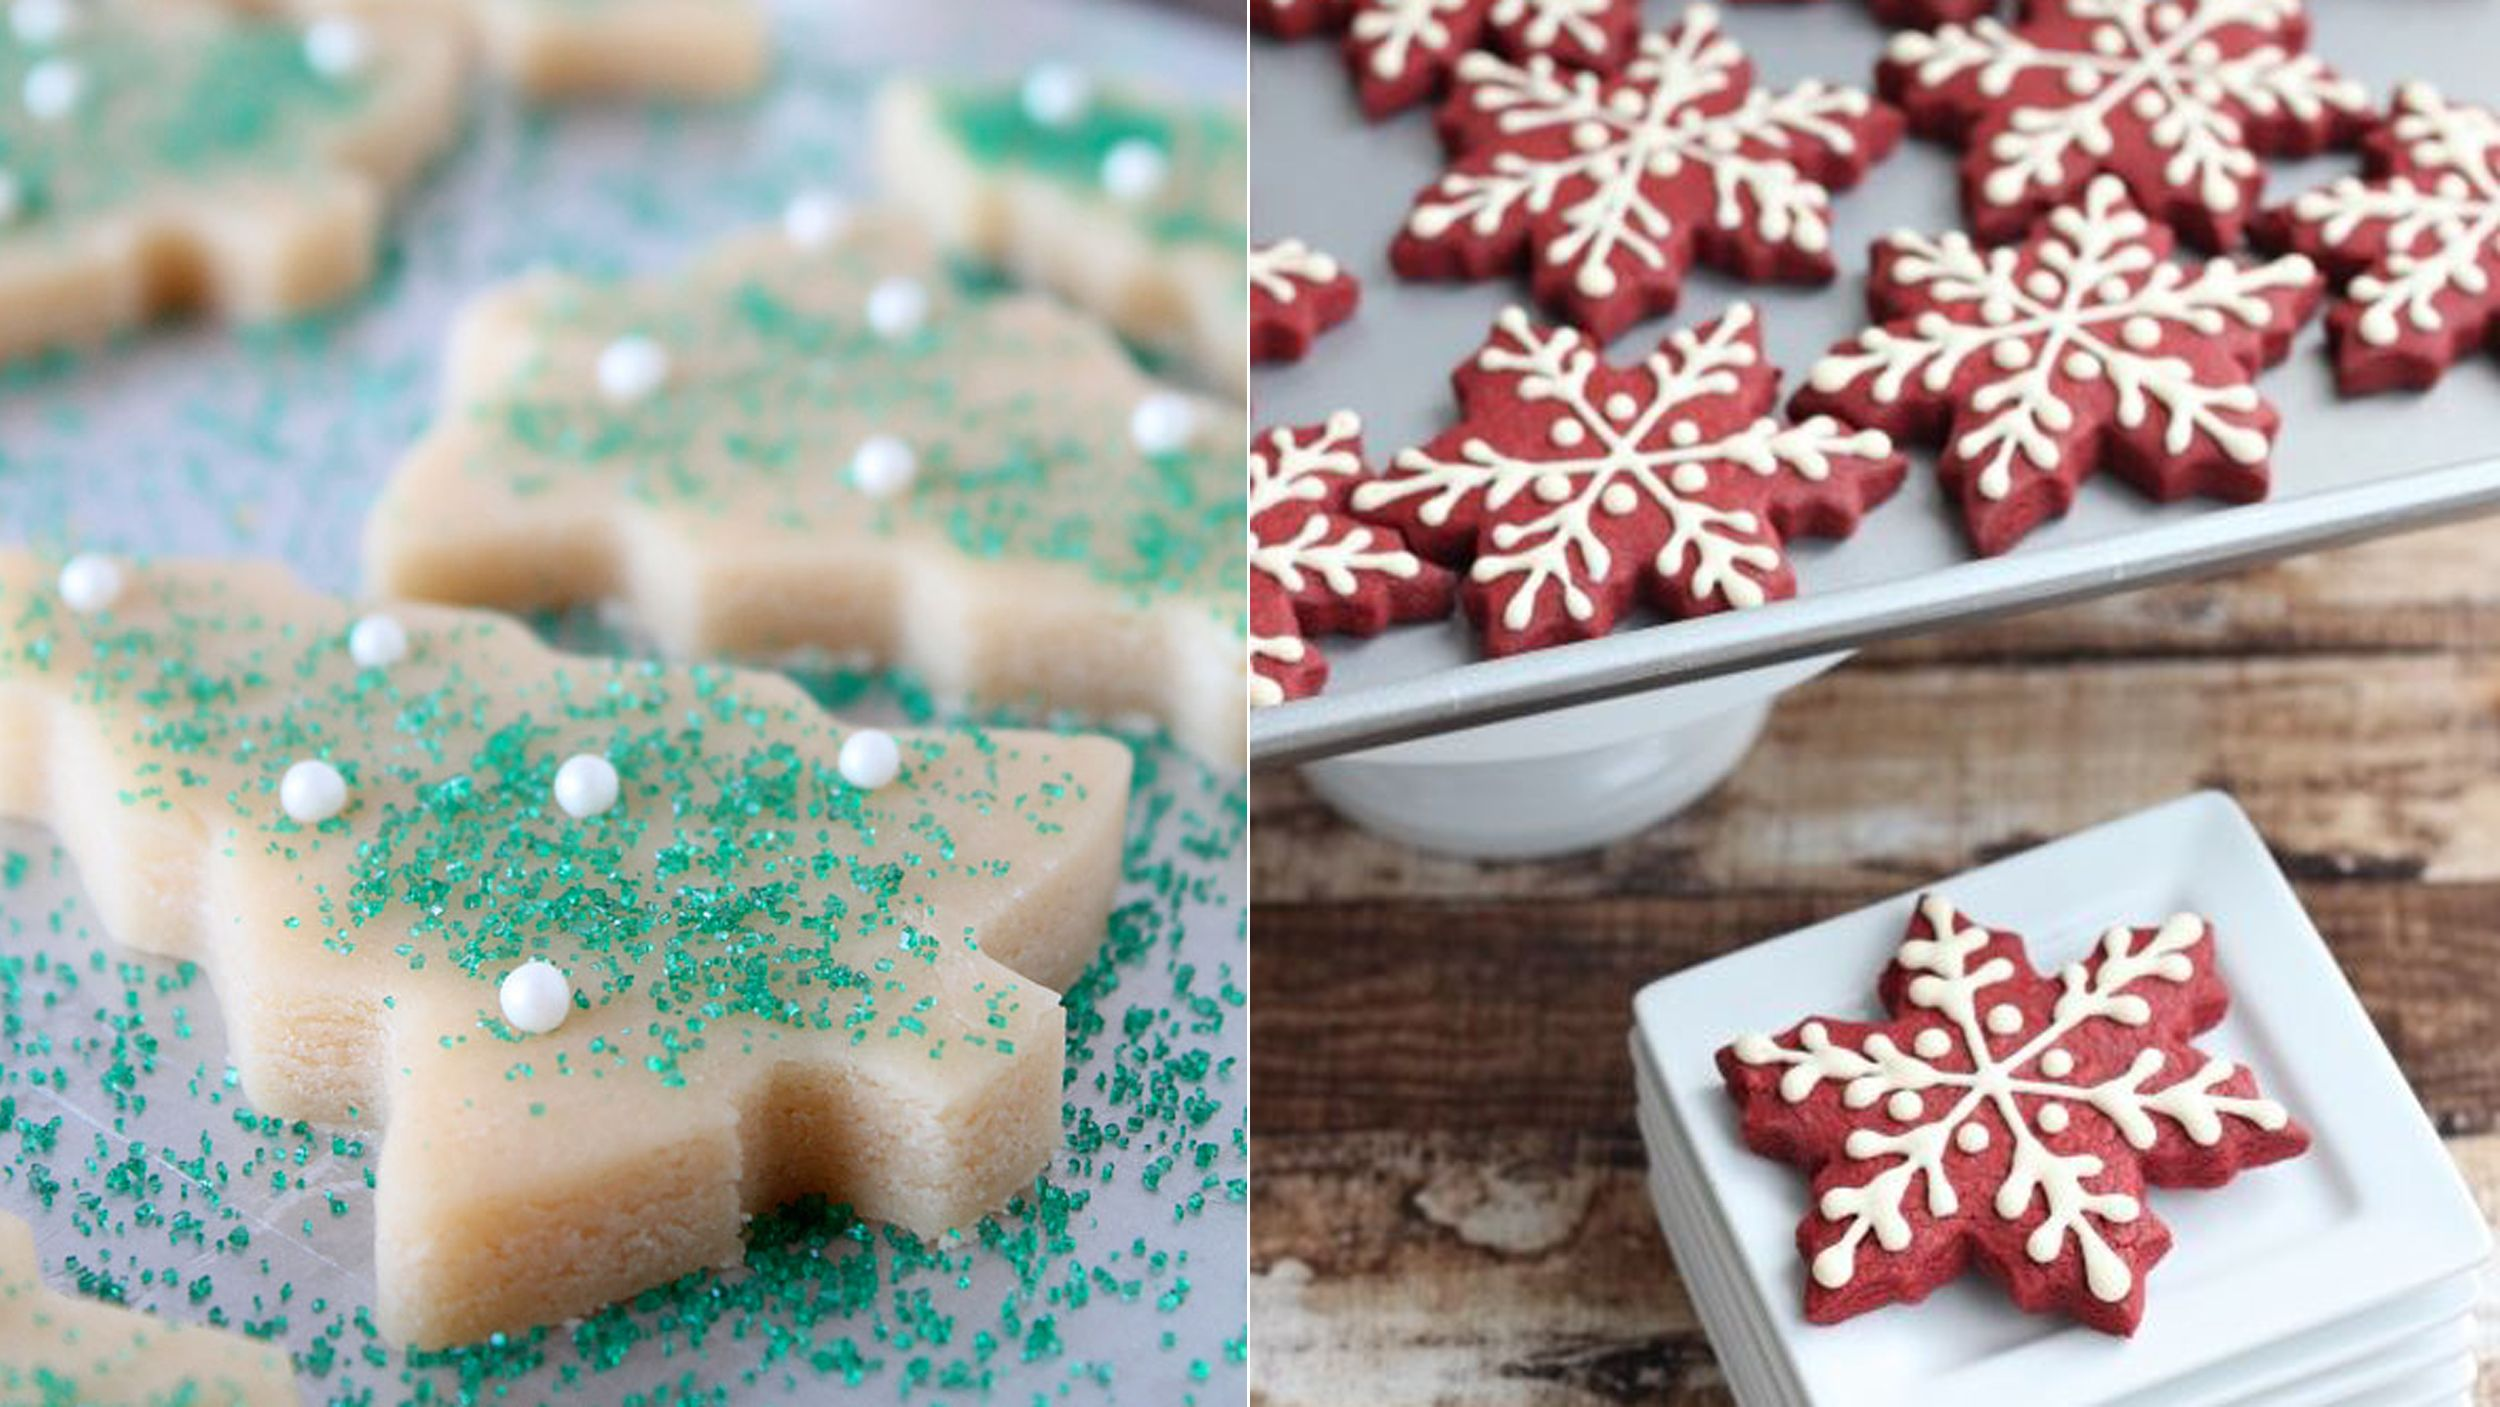 Baking Inspiration 11 Fun And Festive Holiday Cookie Ideas From Pinterest Cookies Recipes Christmas Holiday Cookies Christmas Treats